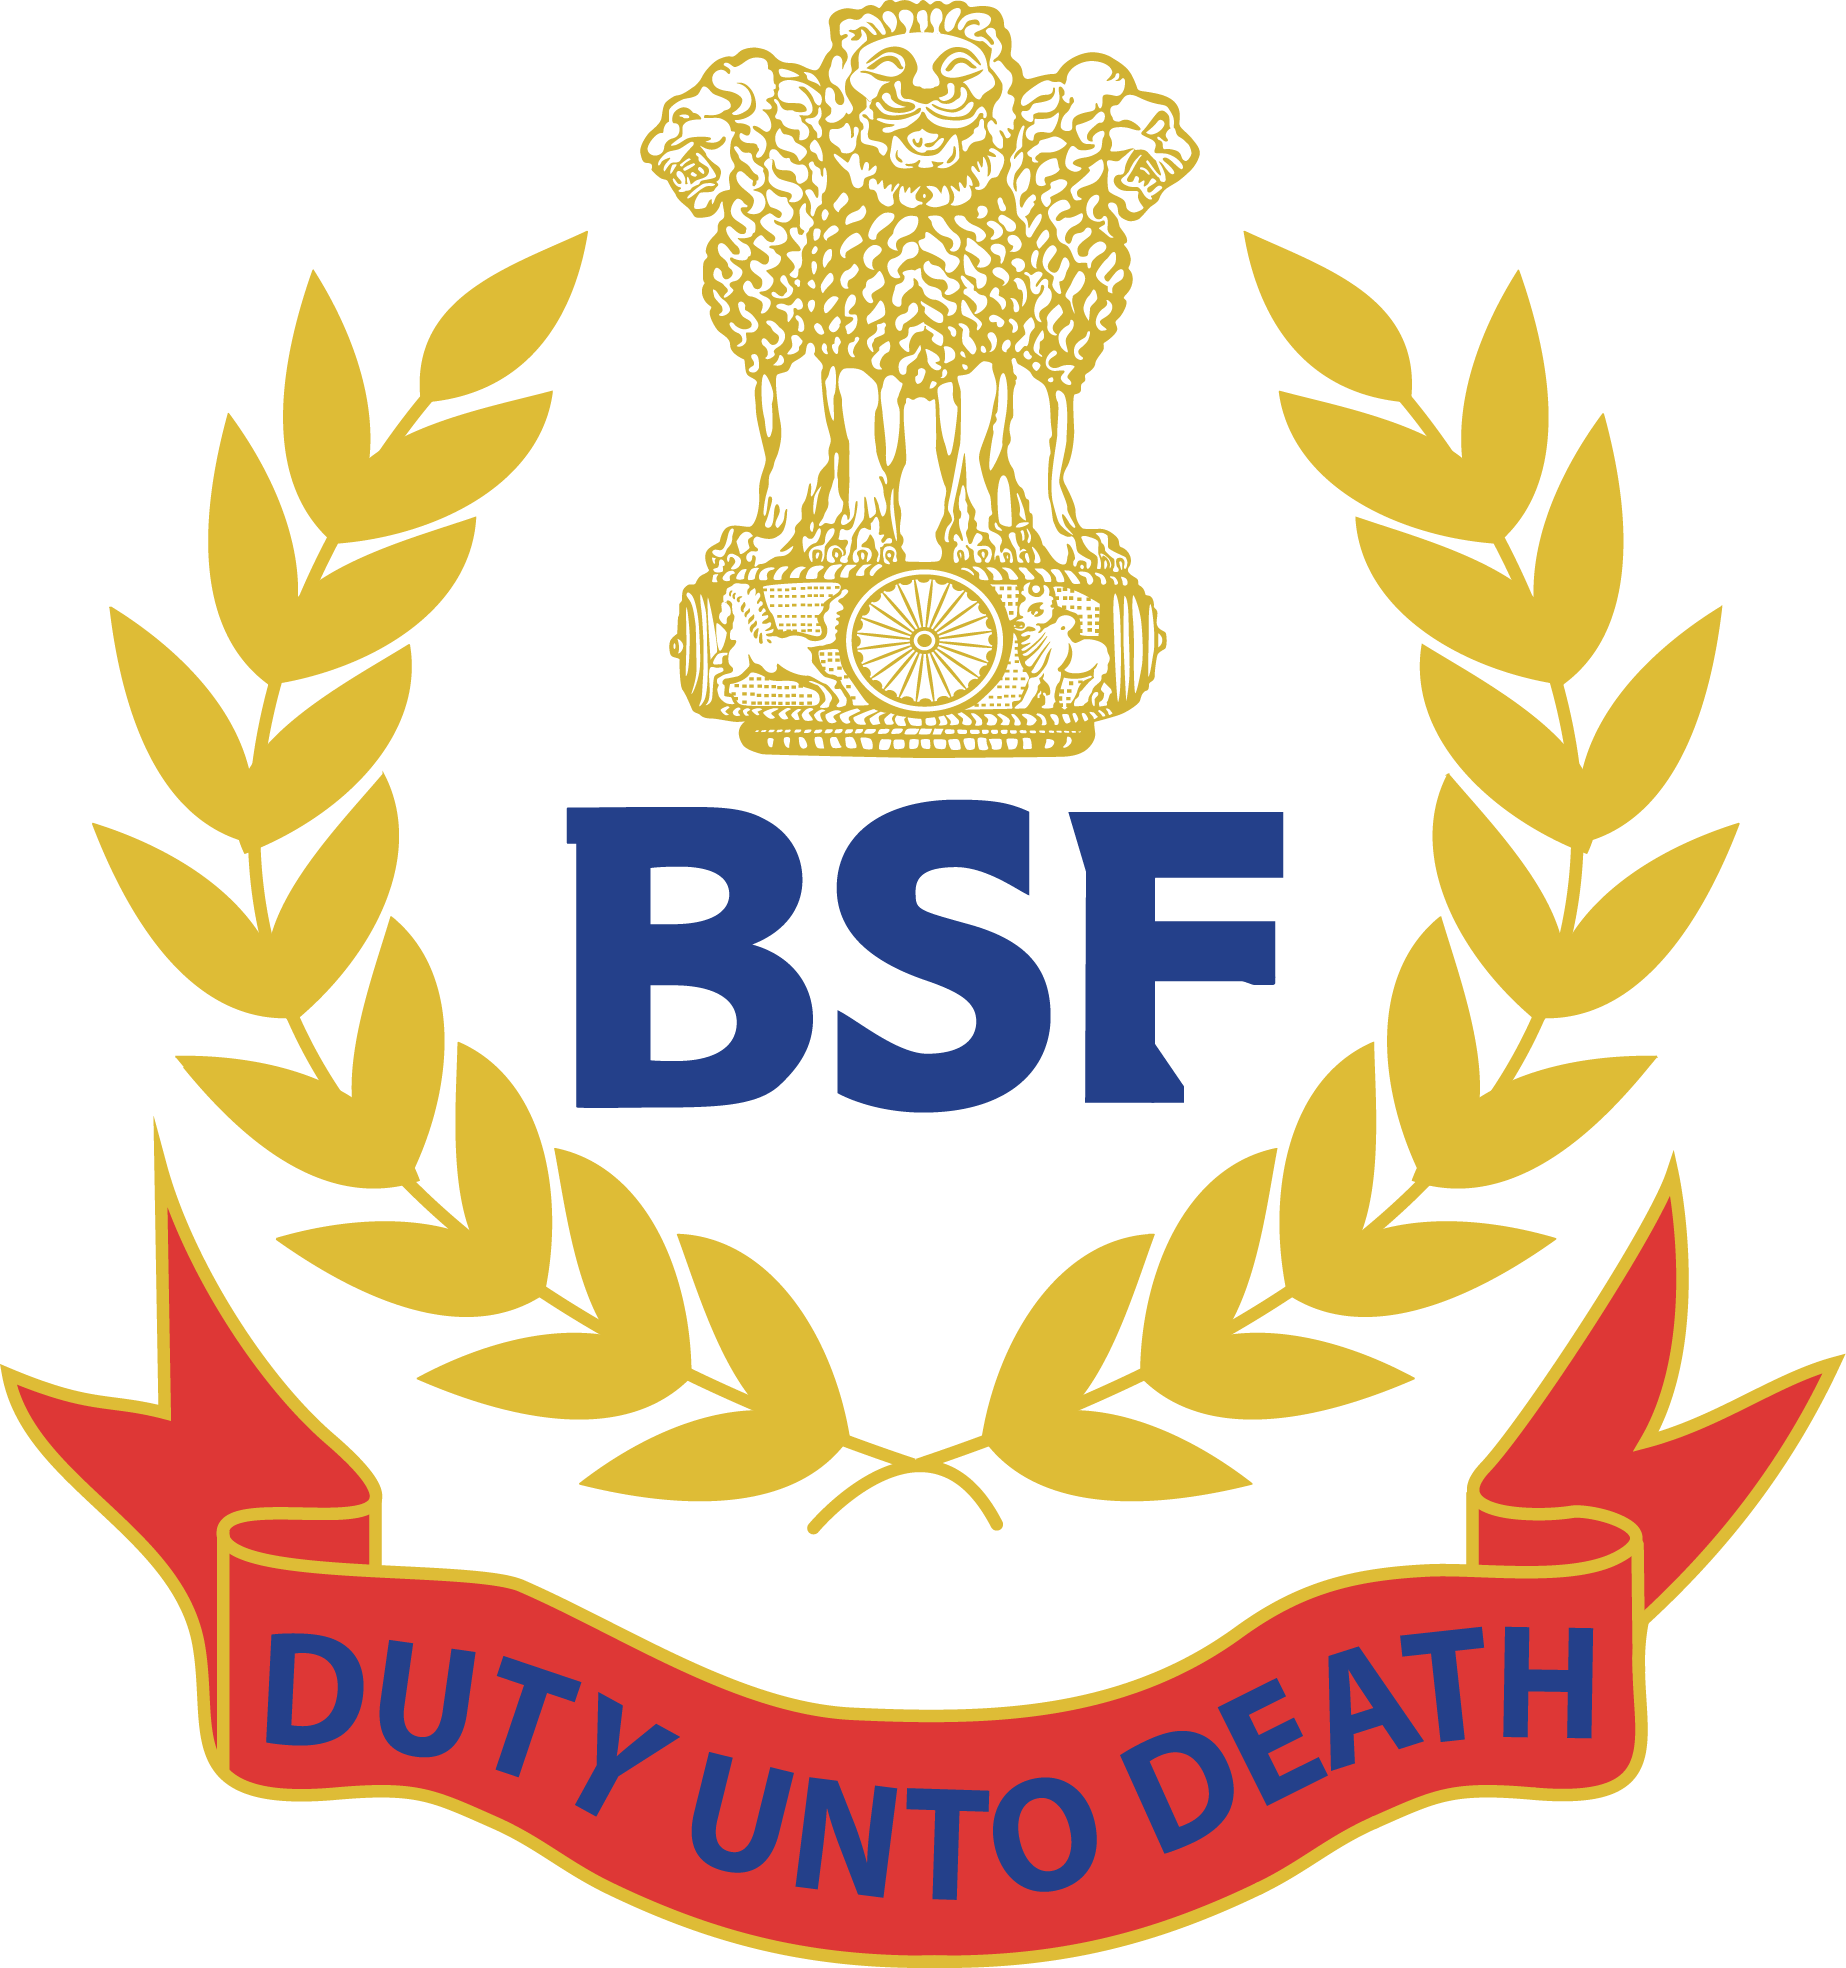 bsf logo border security force vector eps free download logo rh freelogovectors net free crest vector downloads crest logo vector free download